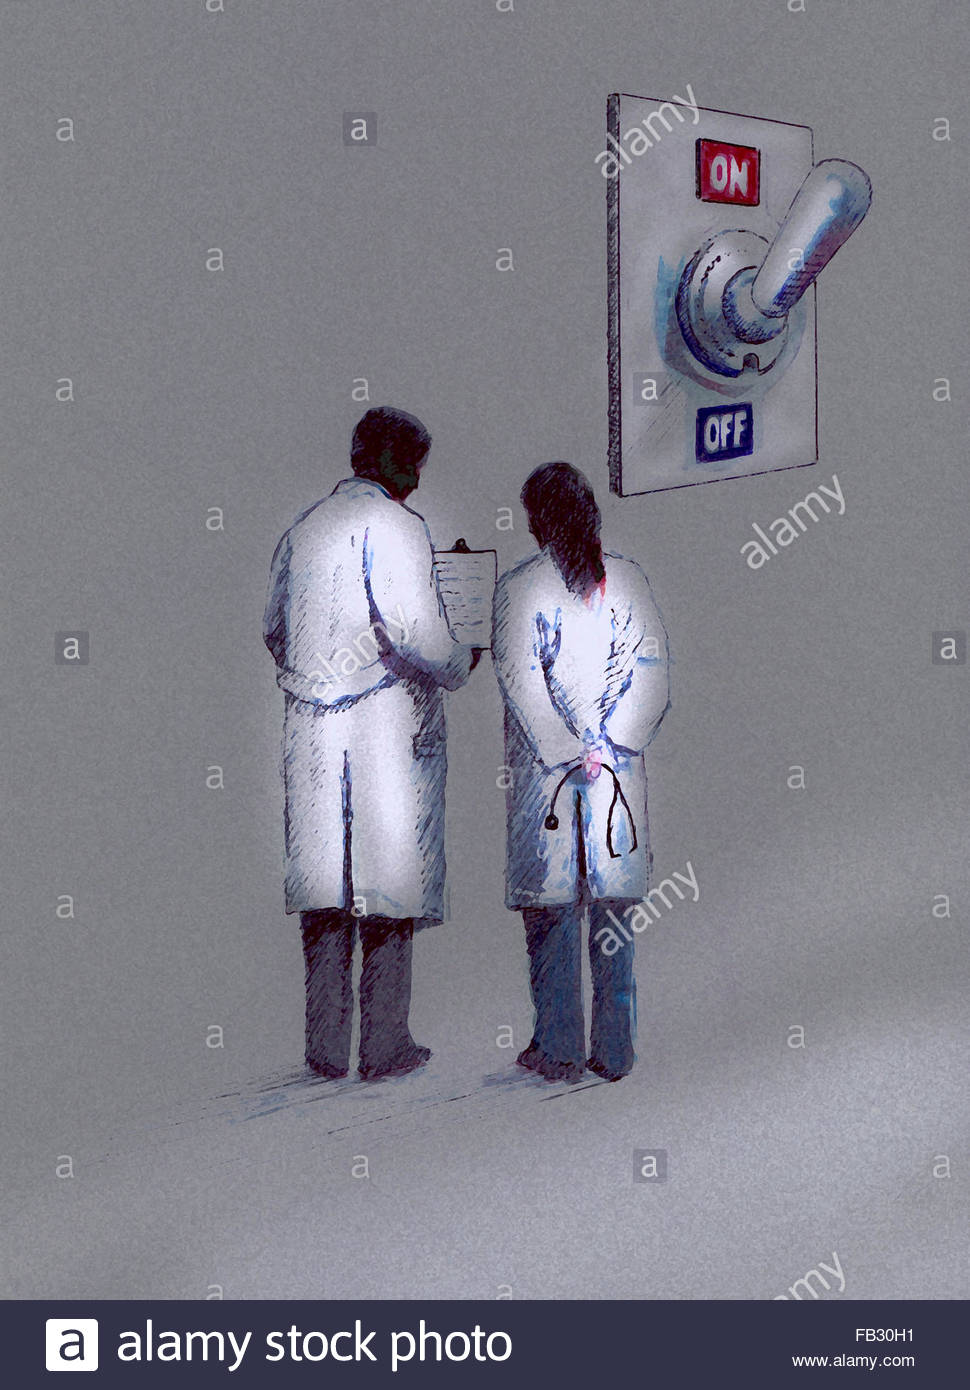 Doctors discussing clipboard notes in front of large on off switch - Stock Image